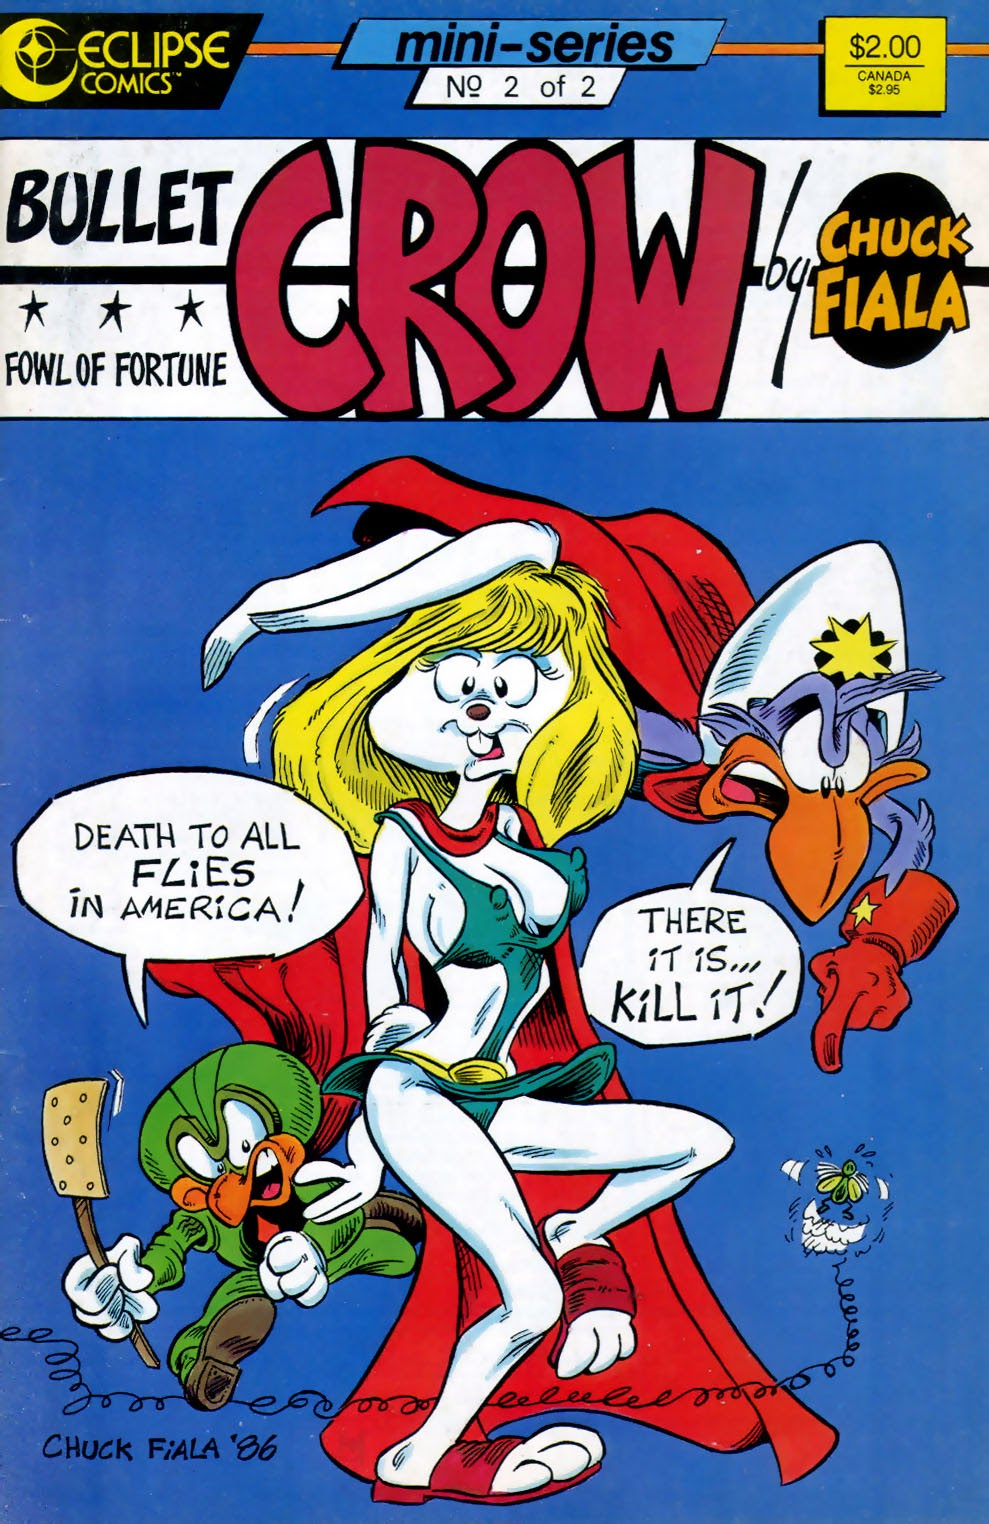 Read online Bullet Crow, Fowl of Fortune comic -  Issue #2 - 1